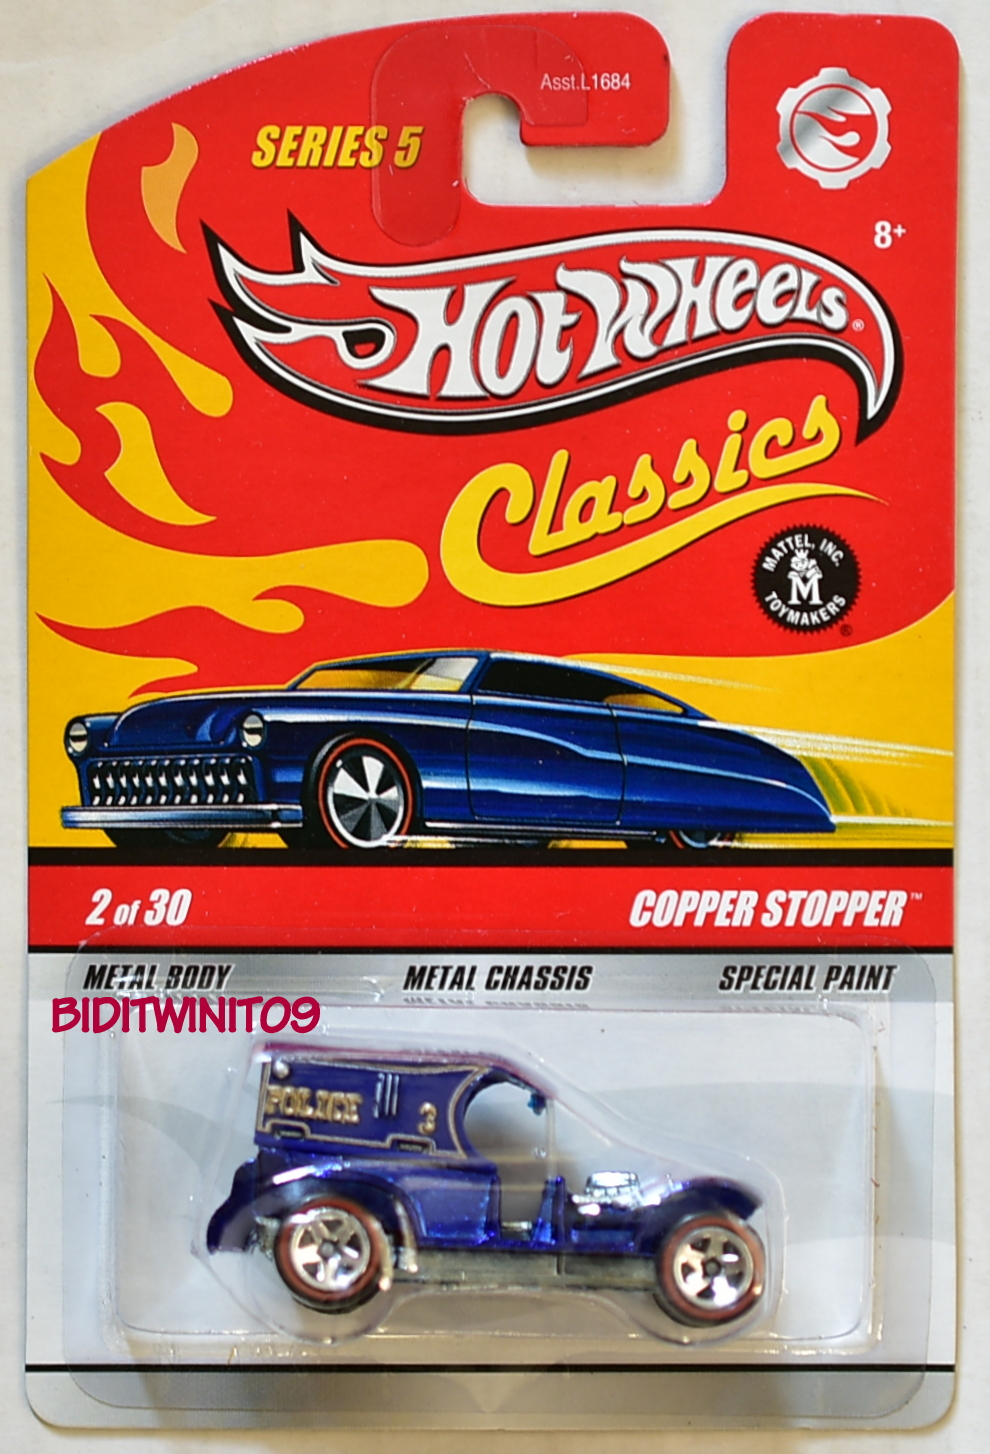 HOT WHEELS CLASSICS SERIES 5 COPPER STOPPER #2/30 METALLIC BLUE E+